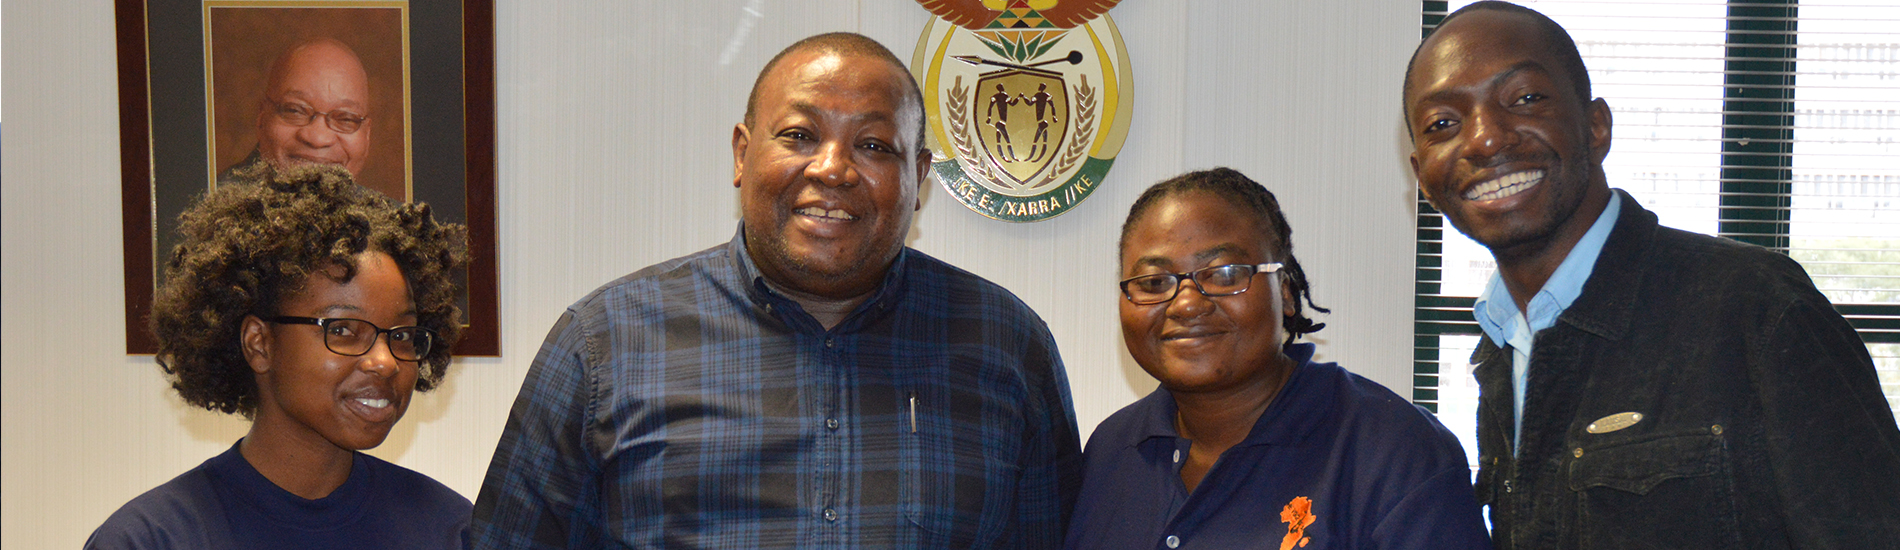 Interview with South African high commissioner to Botswana.